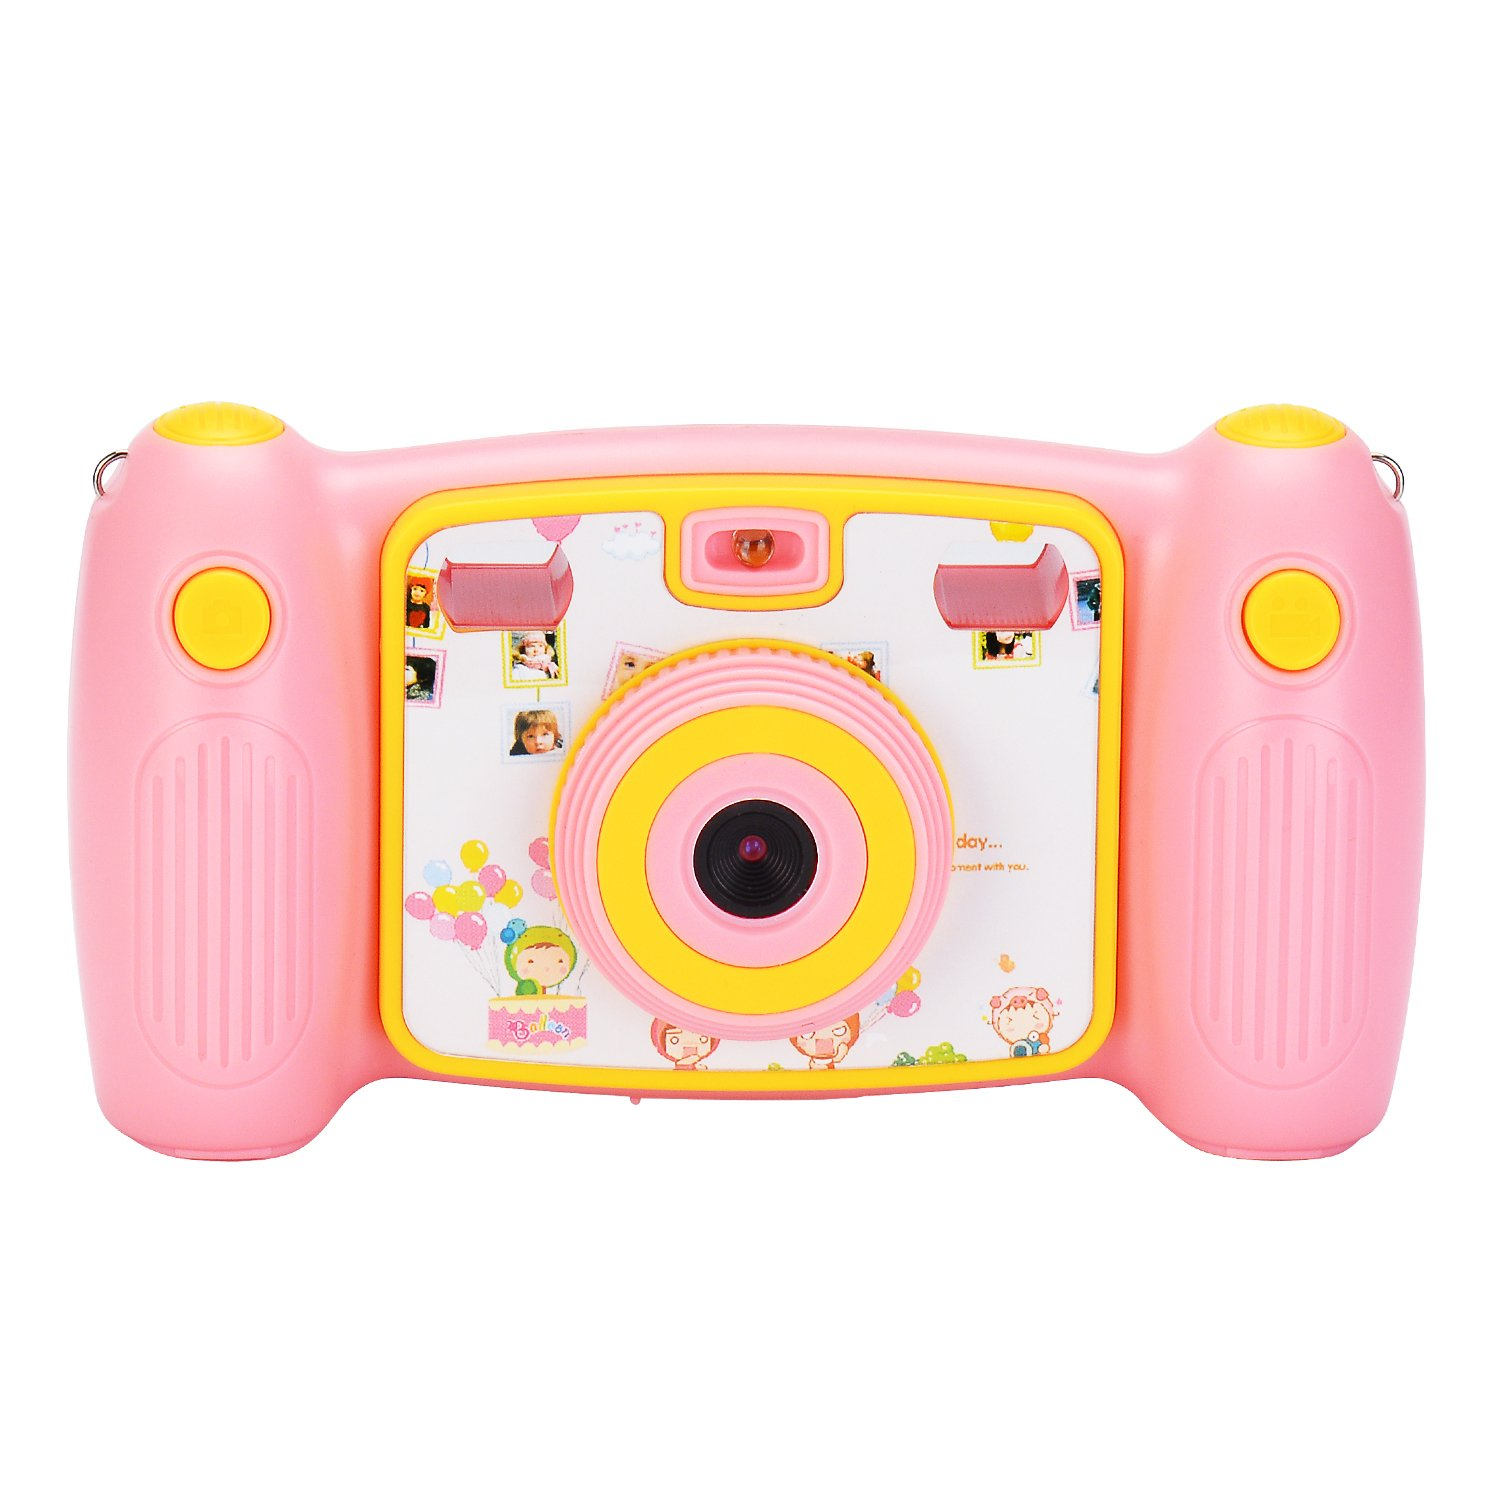 Jusinhel Cute Kids Action Camera for Children Digital Video HD Camcorder DV for Holiday Birthday Gift - Pink